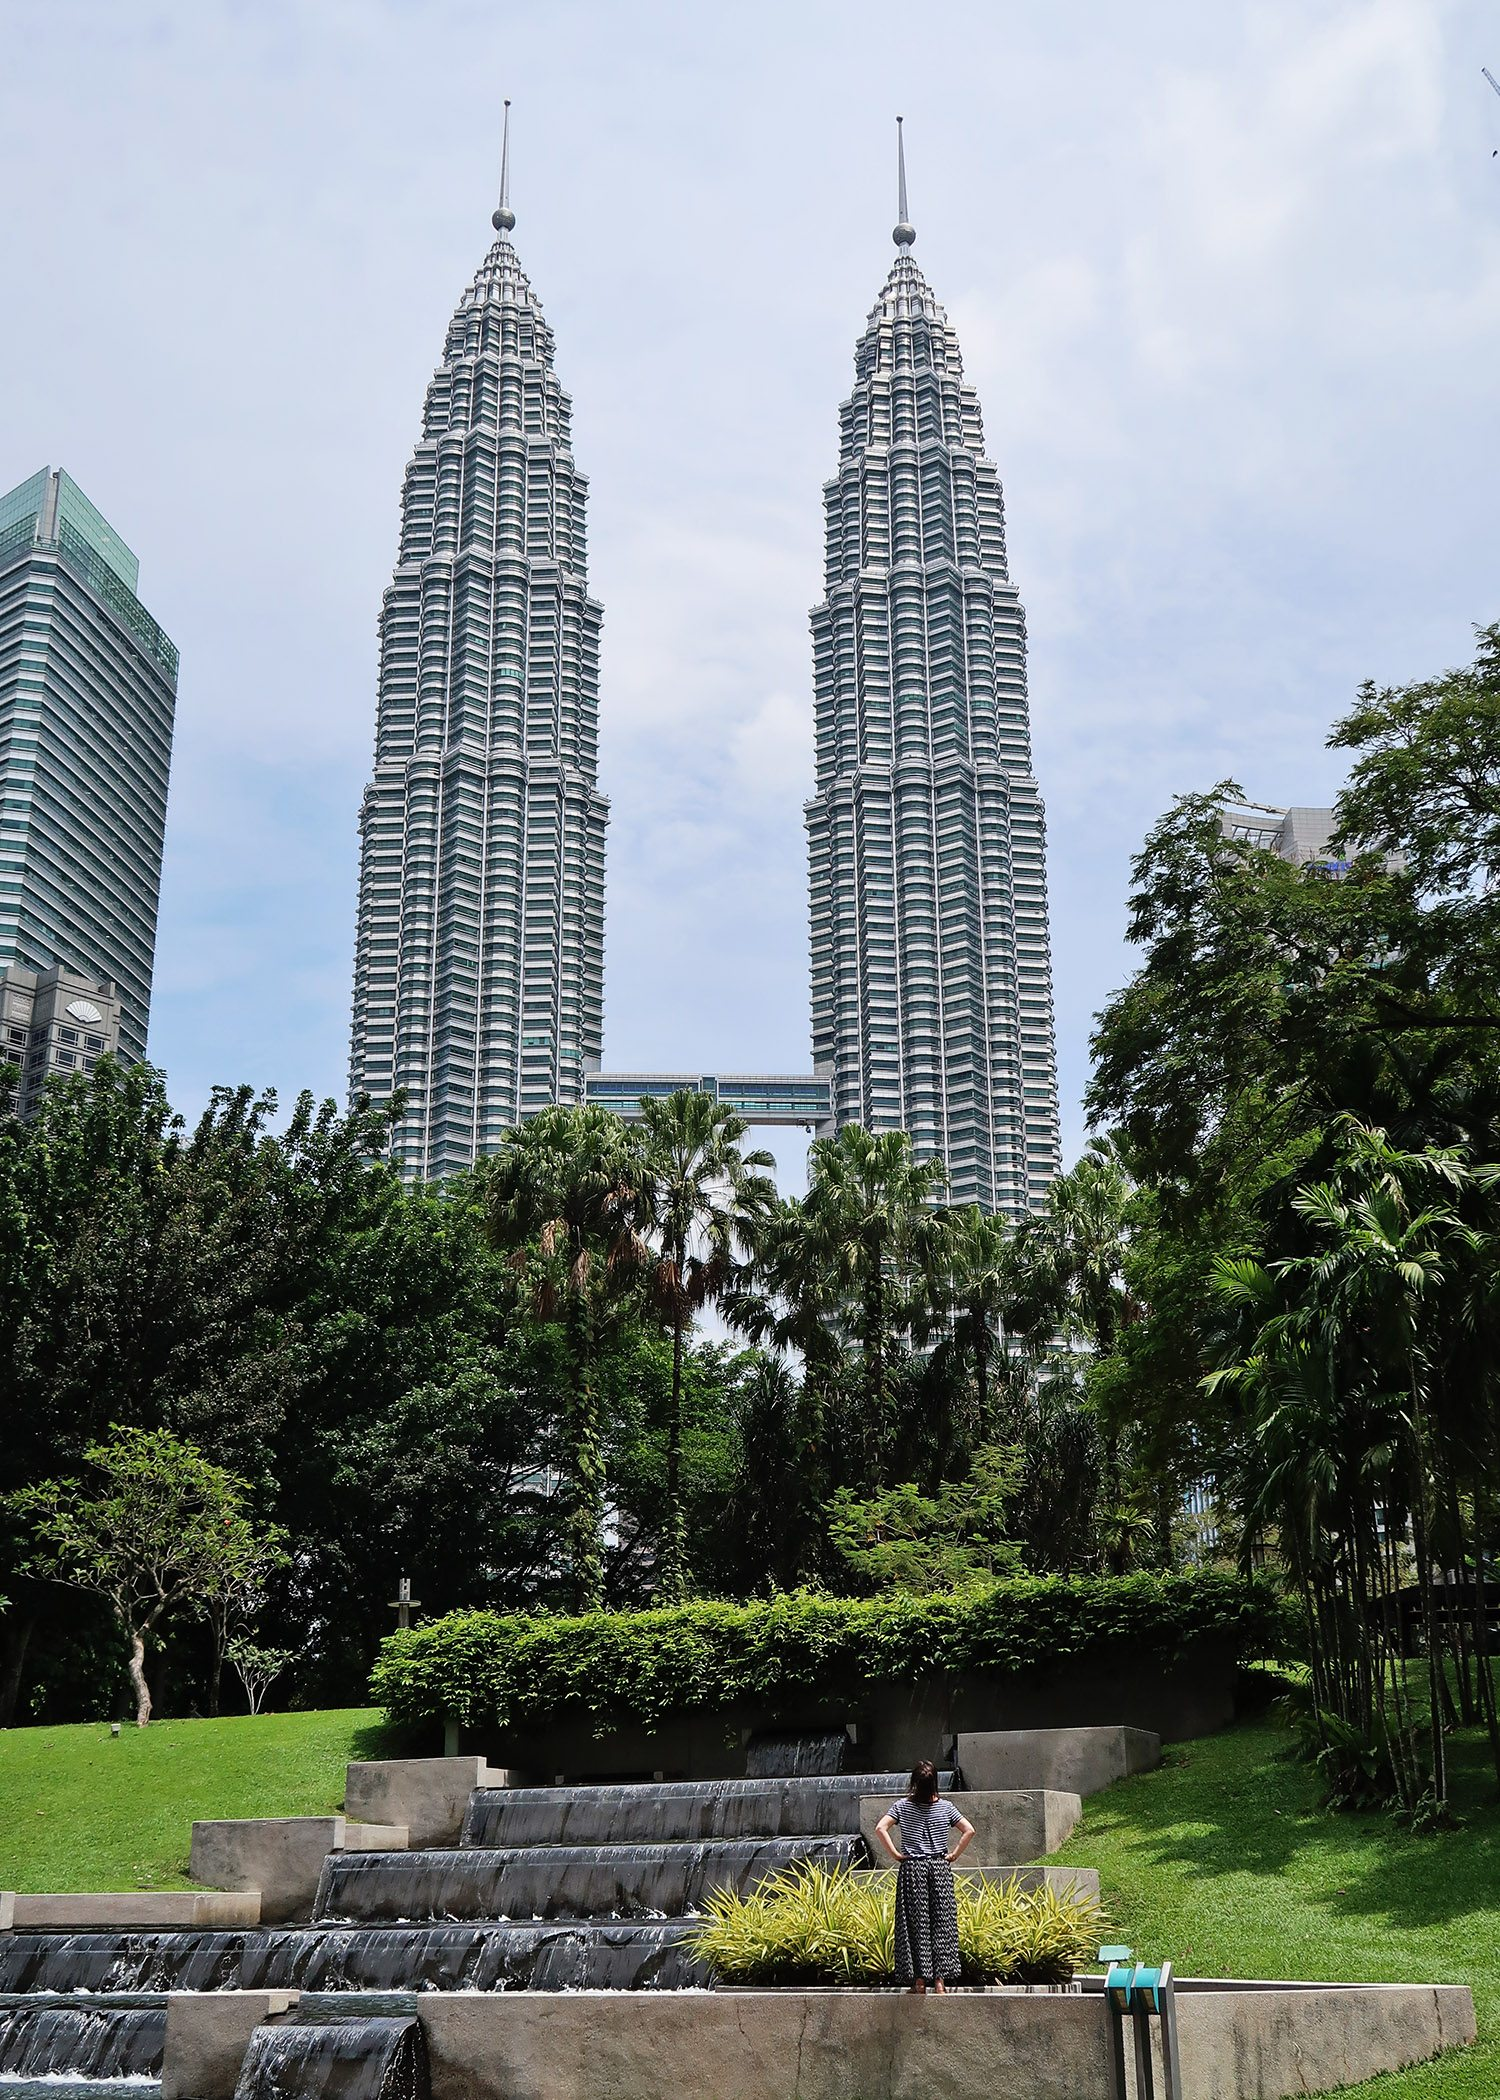 Visiting the Petronas Towers